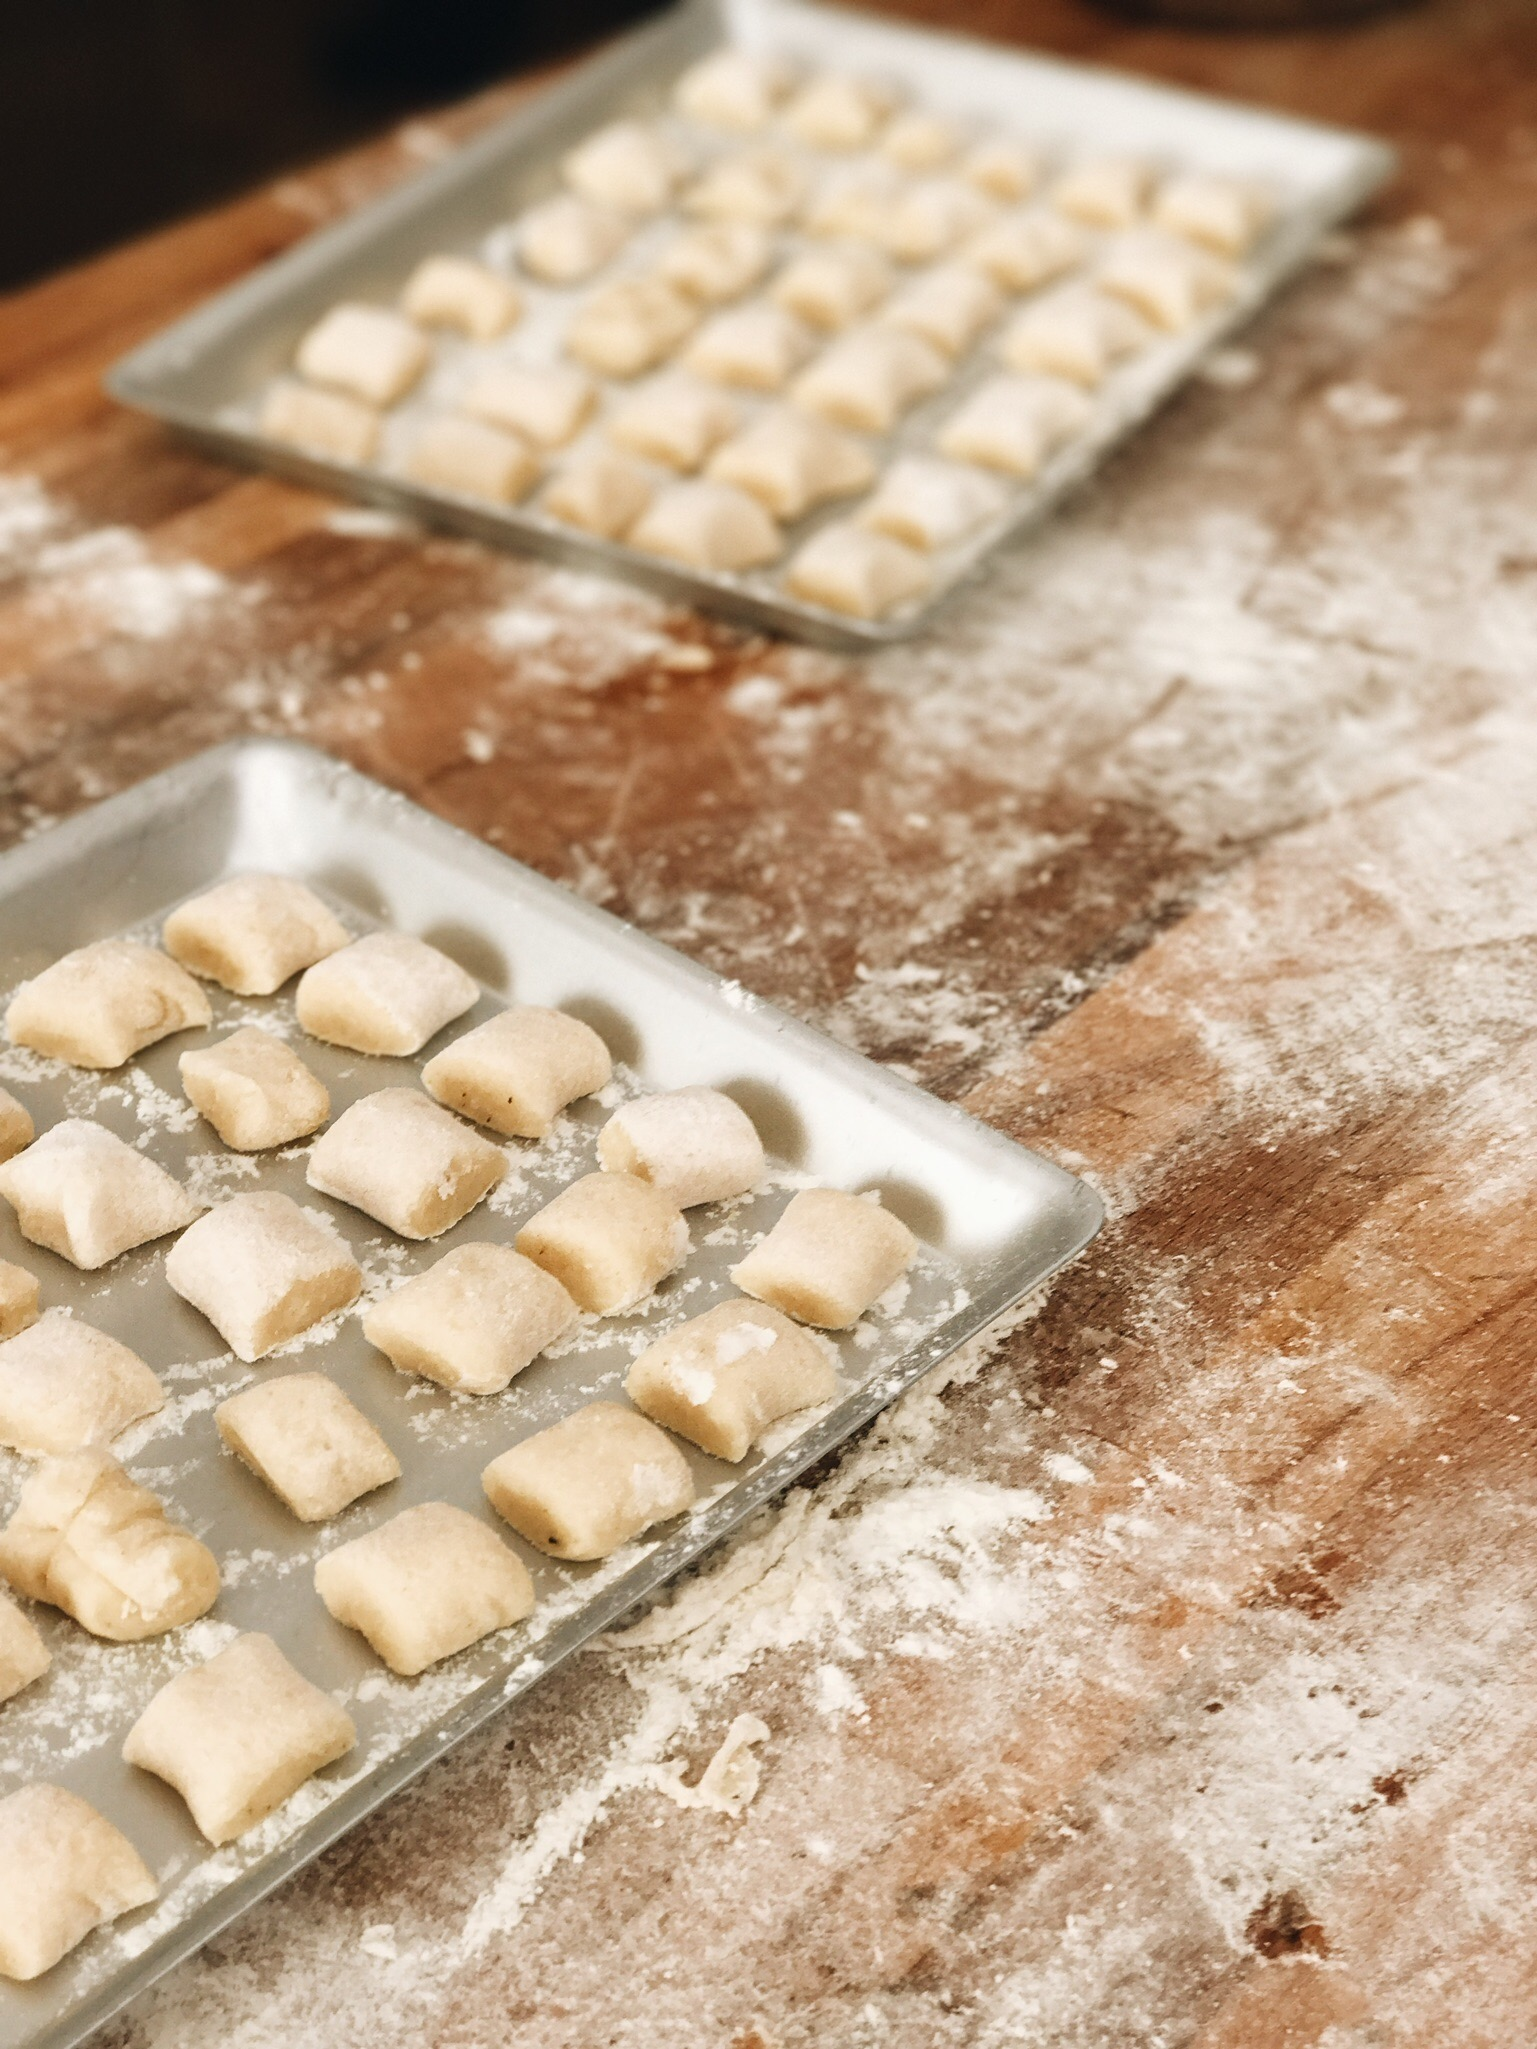 Fresh Gnocchi made in Rome, Italy